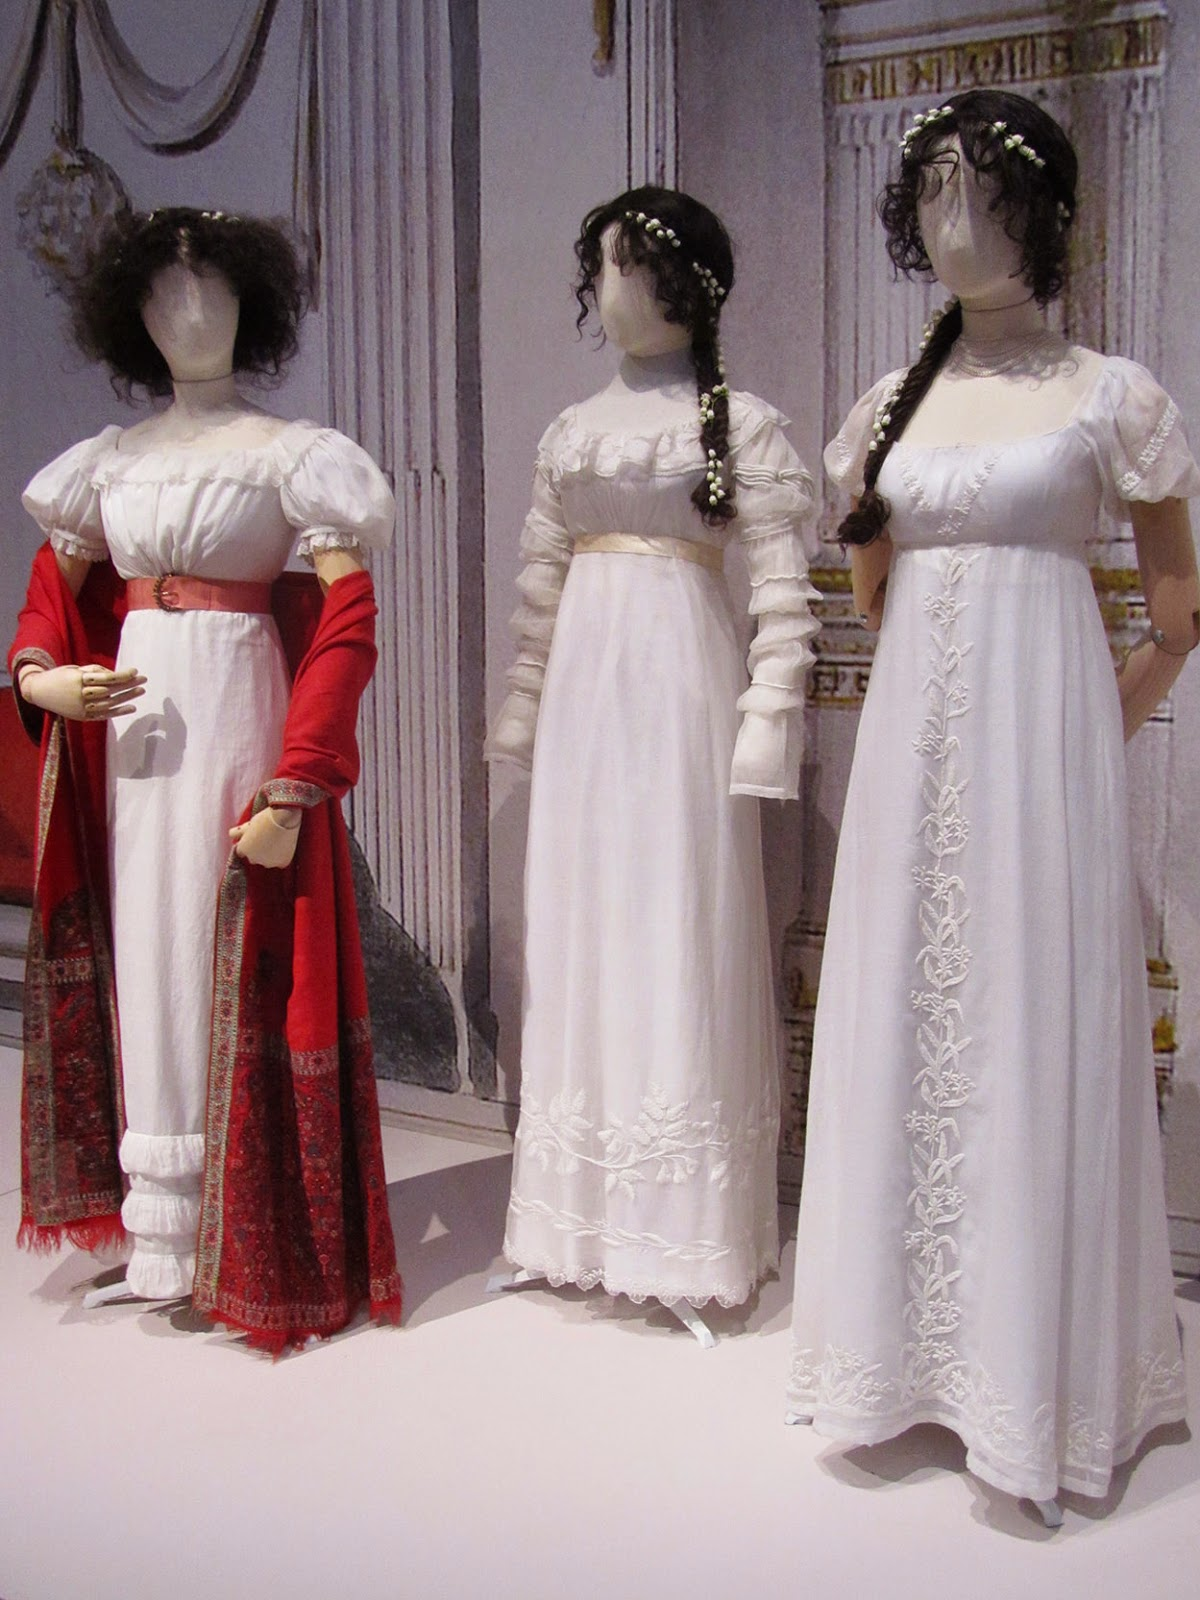 cotton dresses, 1805-20